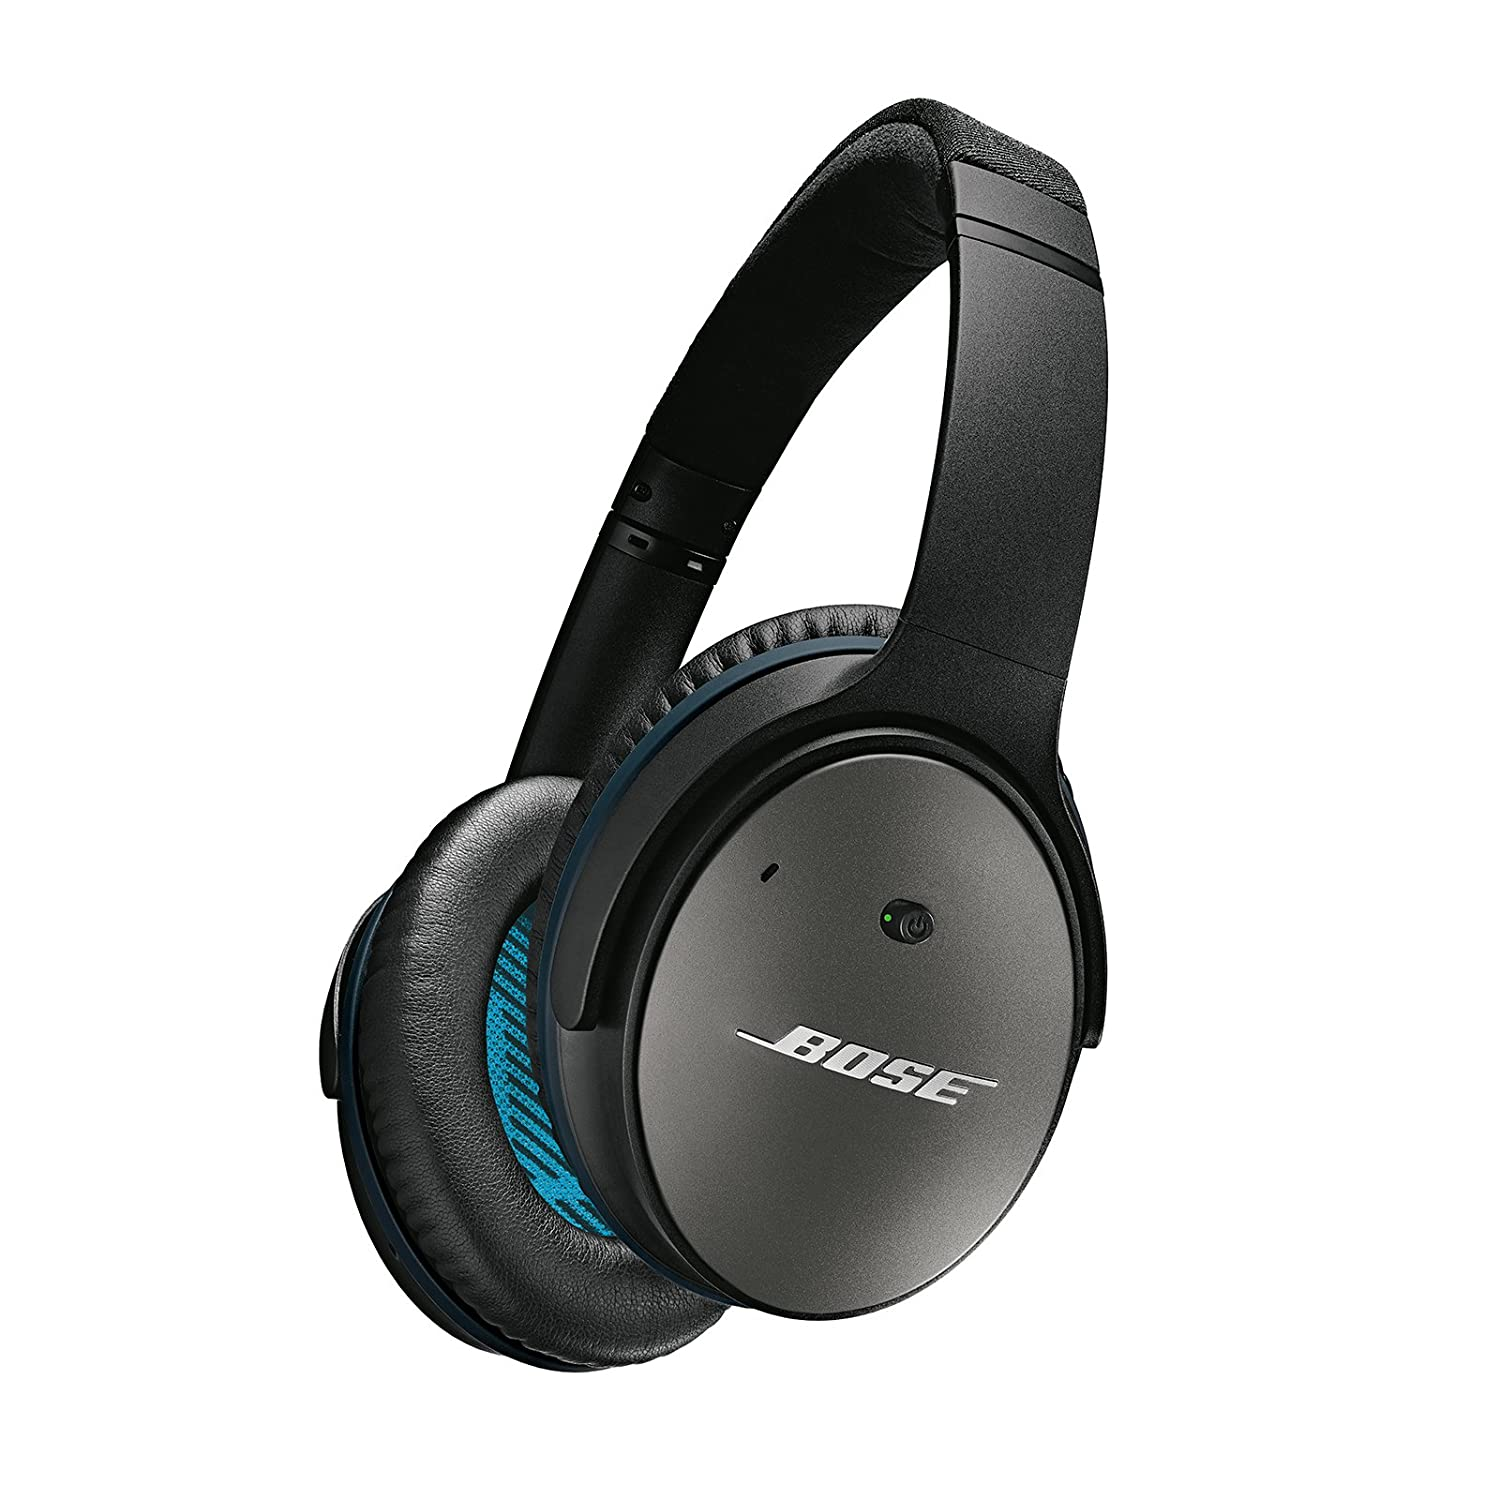 c76ceb0a0d0 Amazon.com: Bose QuietComfort 25 Acoustic Noise Cancelling Headphones for  Android devices - Black (Wired): Home Audio & Theater